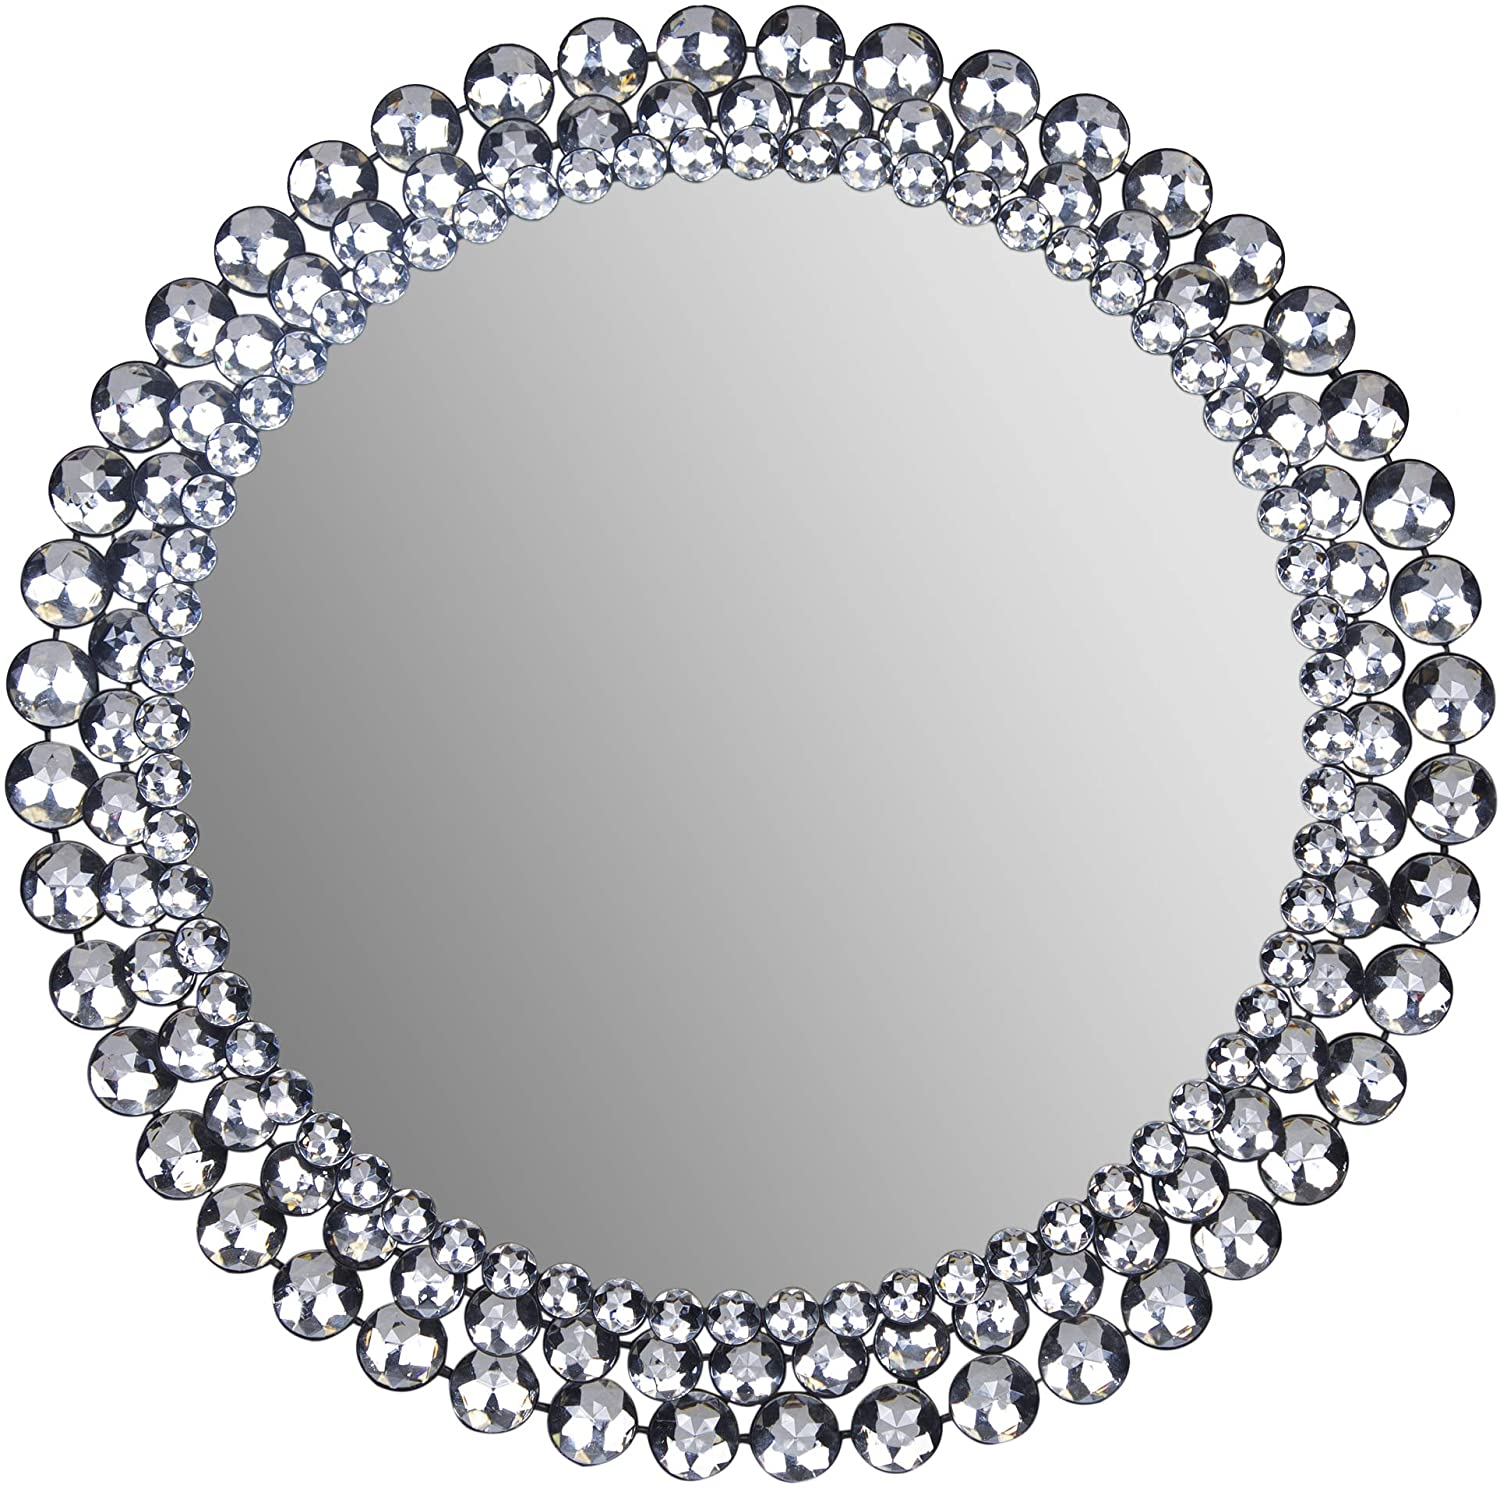 round-jewelled-wall-mounted-mirror